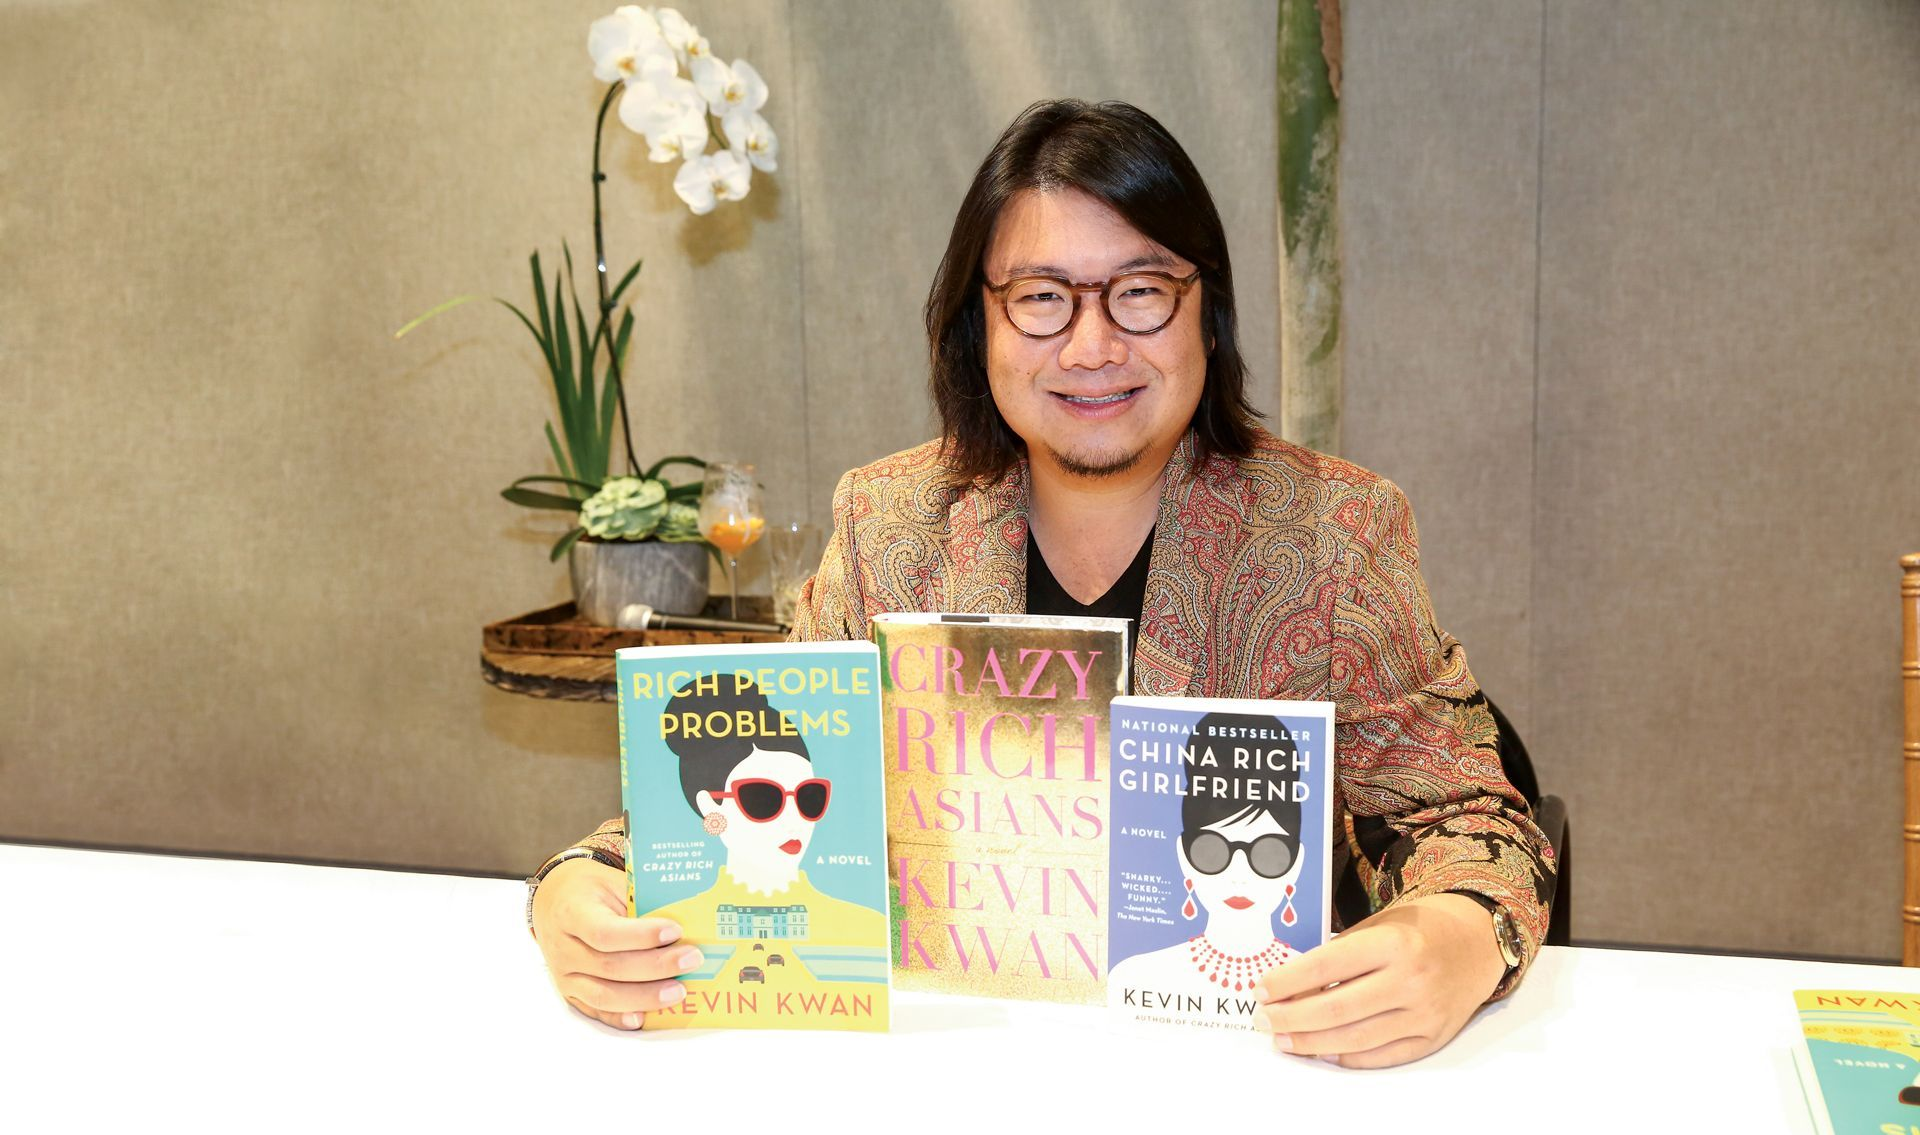 Tatler Talks: Crazy Rich Asians Author Kevin Kwan  In Conversation With Tatler Philippines